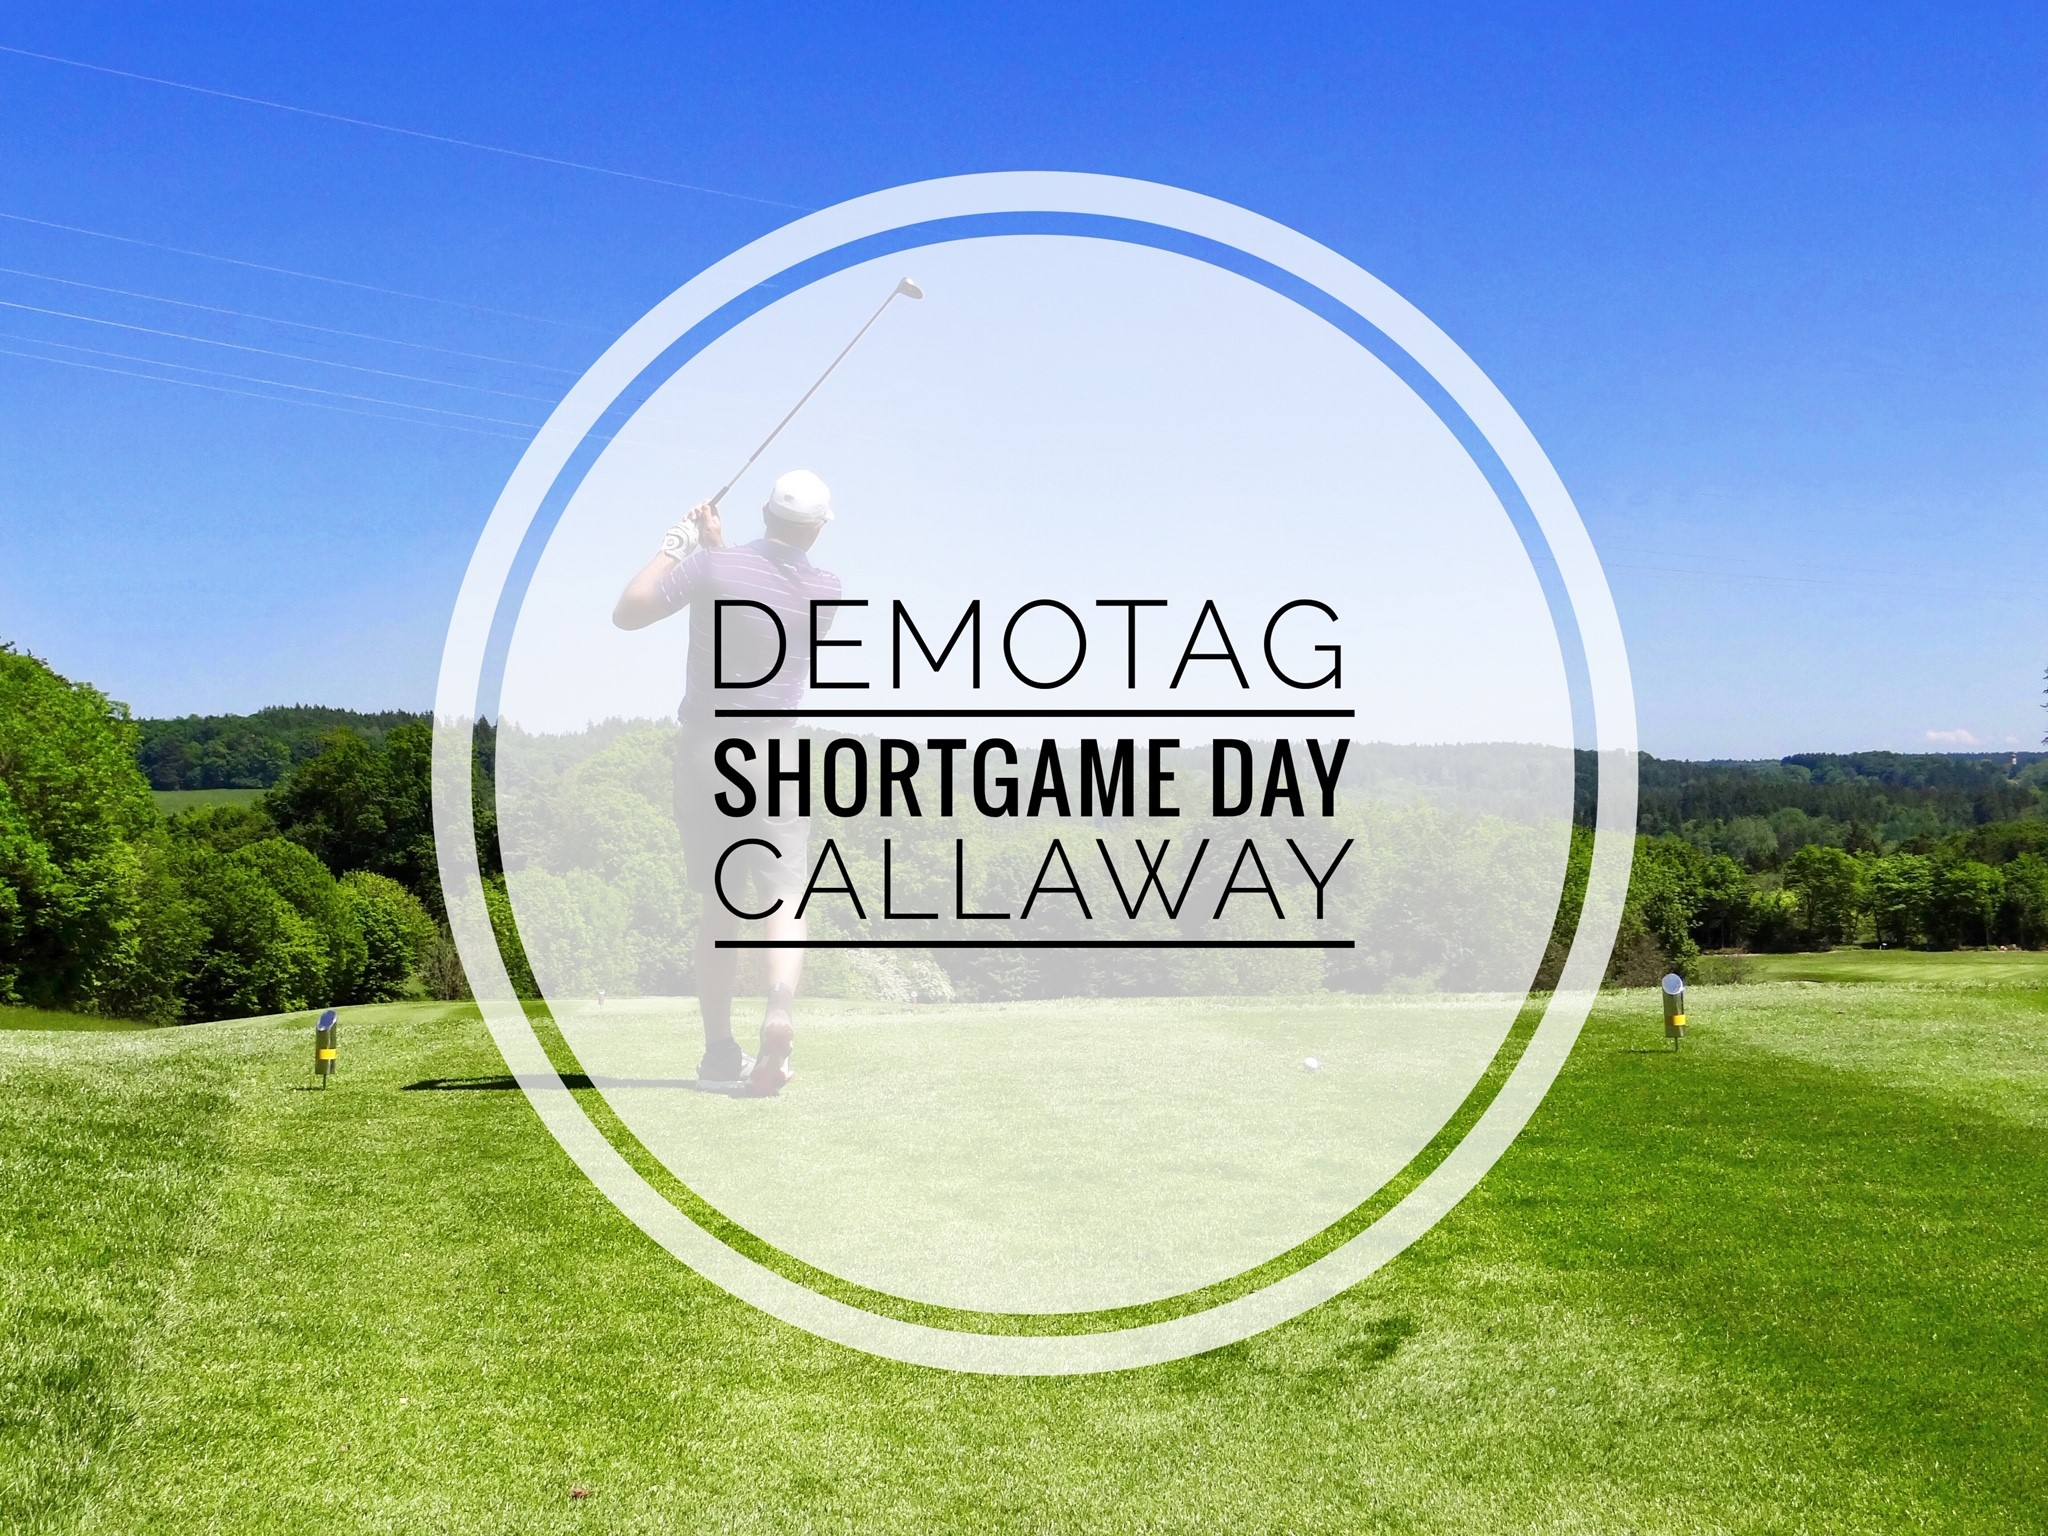 Demoday Shortgame Day